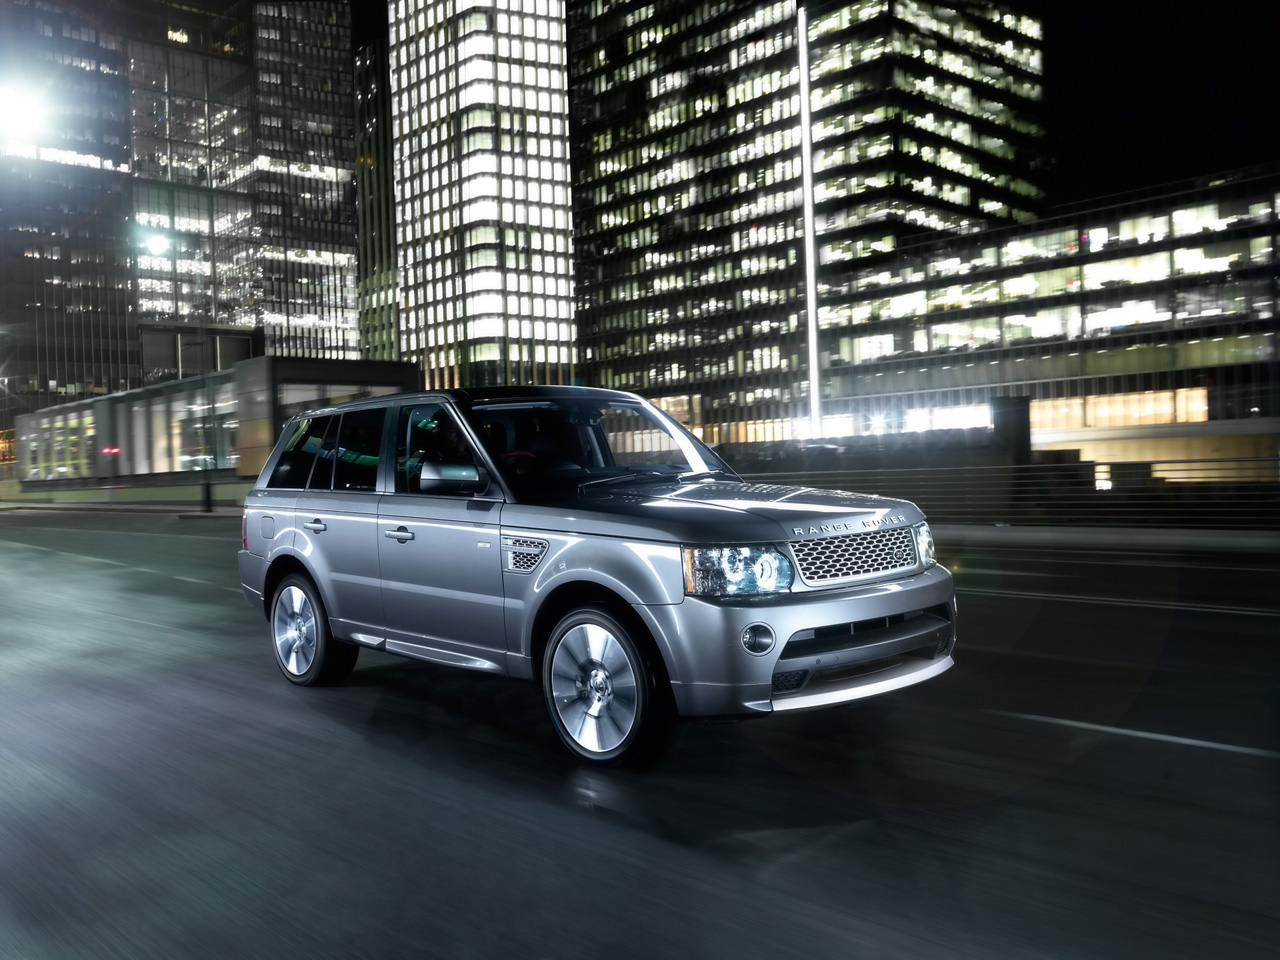 2011 land rover dc100 concept side 2 1280x960 wallpaper - The 2010 Land Rover Range Rover Sport Autobiography Is Available In 6